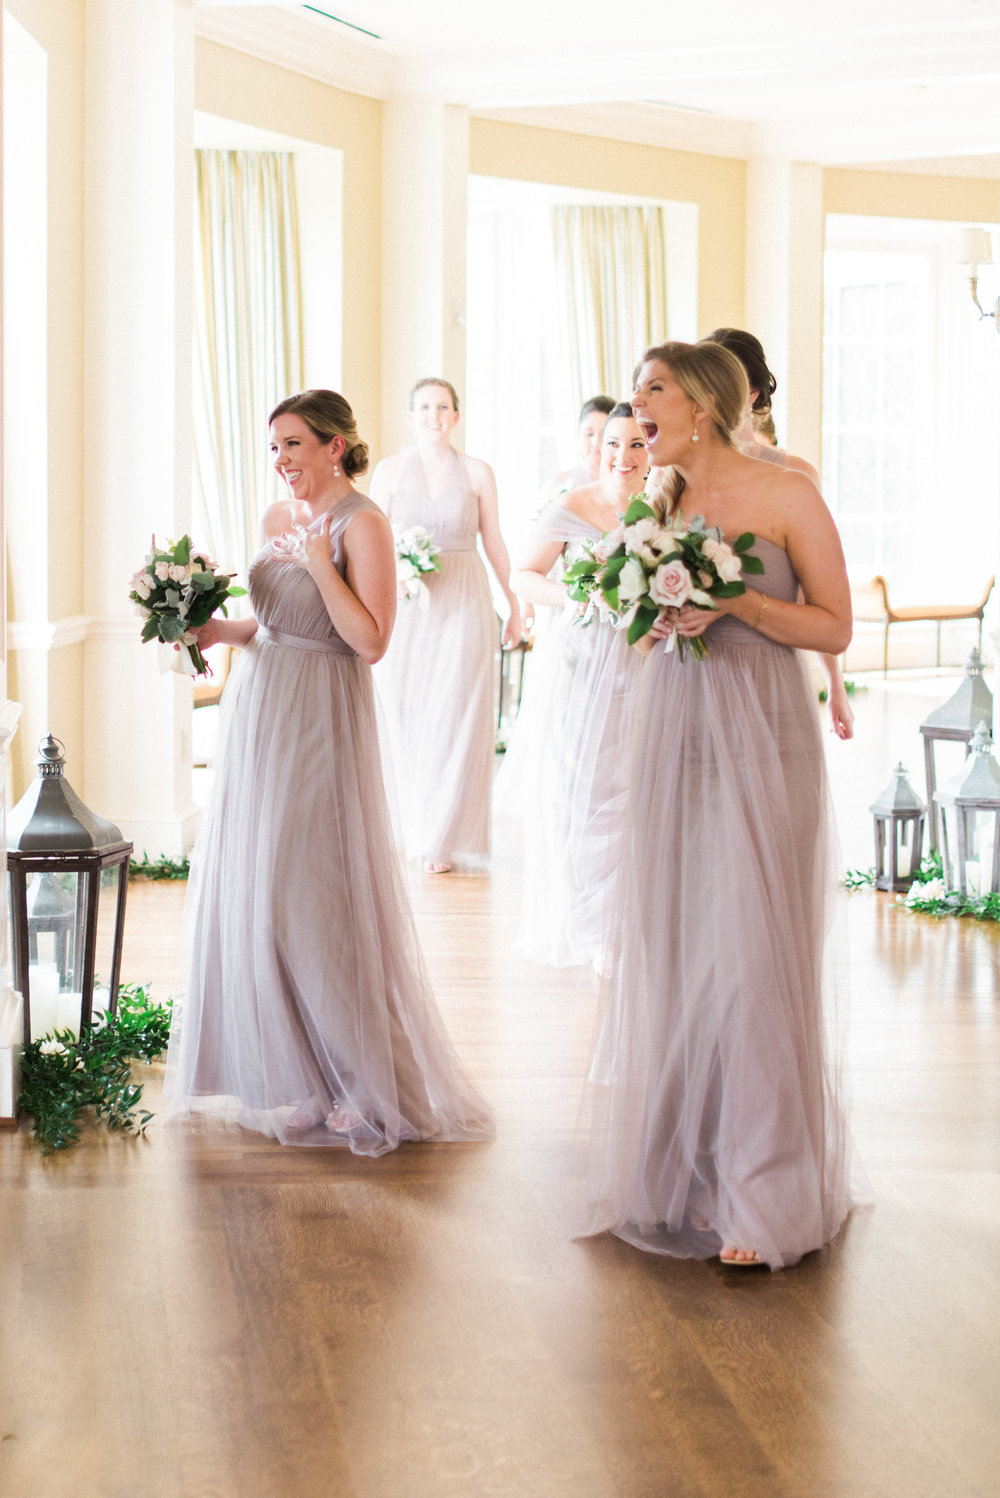 Fine-Art-Film-Houston-Wedding-Photographer-Best-Top-Luxury-Texas-Austin-Dallas-Destination-Dana-Fernandez-Photography-River-Oaks-Country-Club-South-Main-Baptist-Ceremony-Reception-Wedding-6.jpg